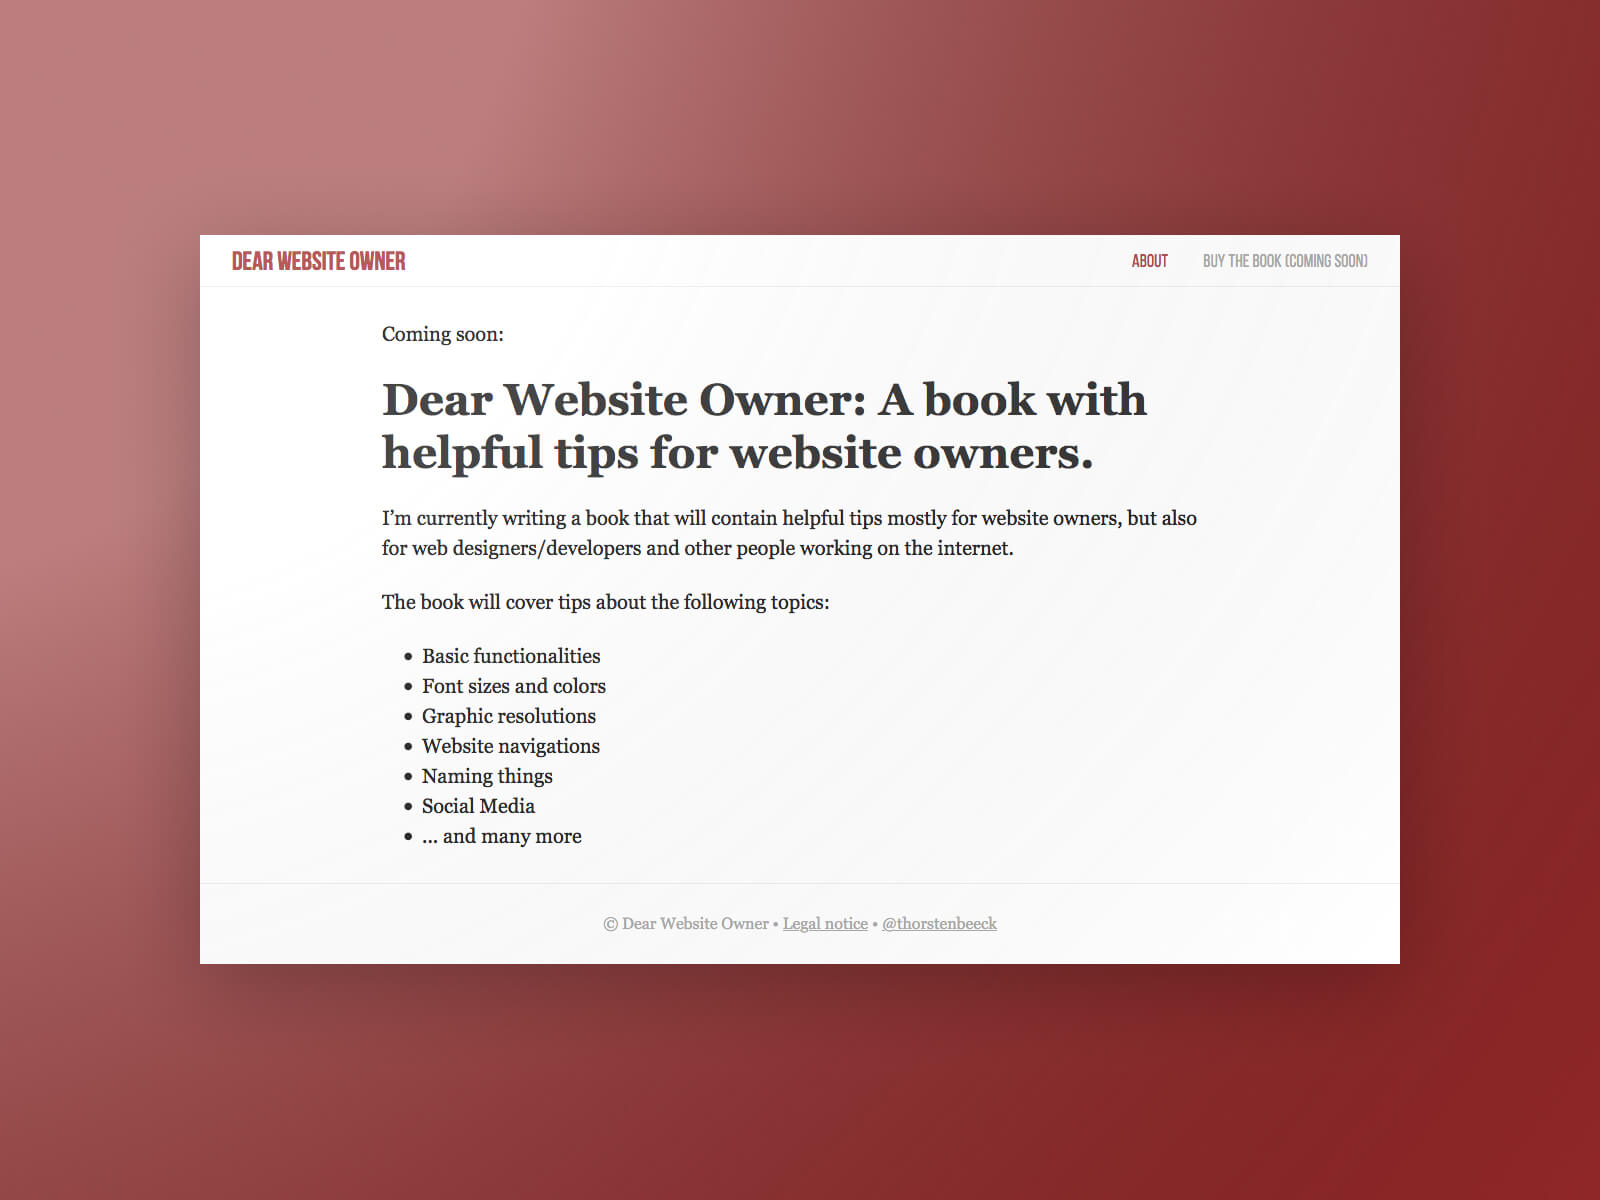 Dear Website Owner